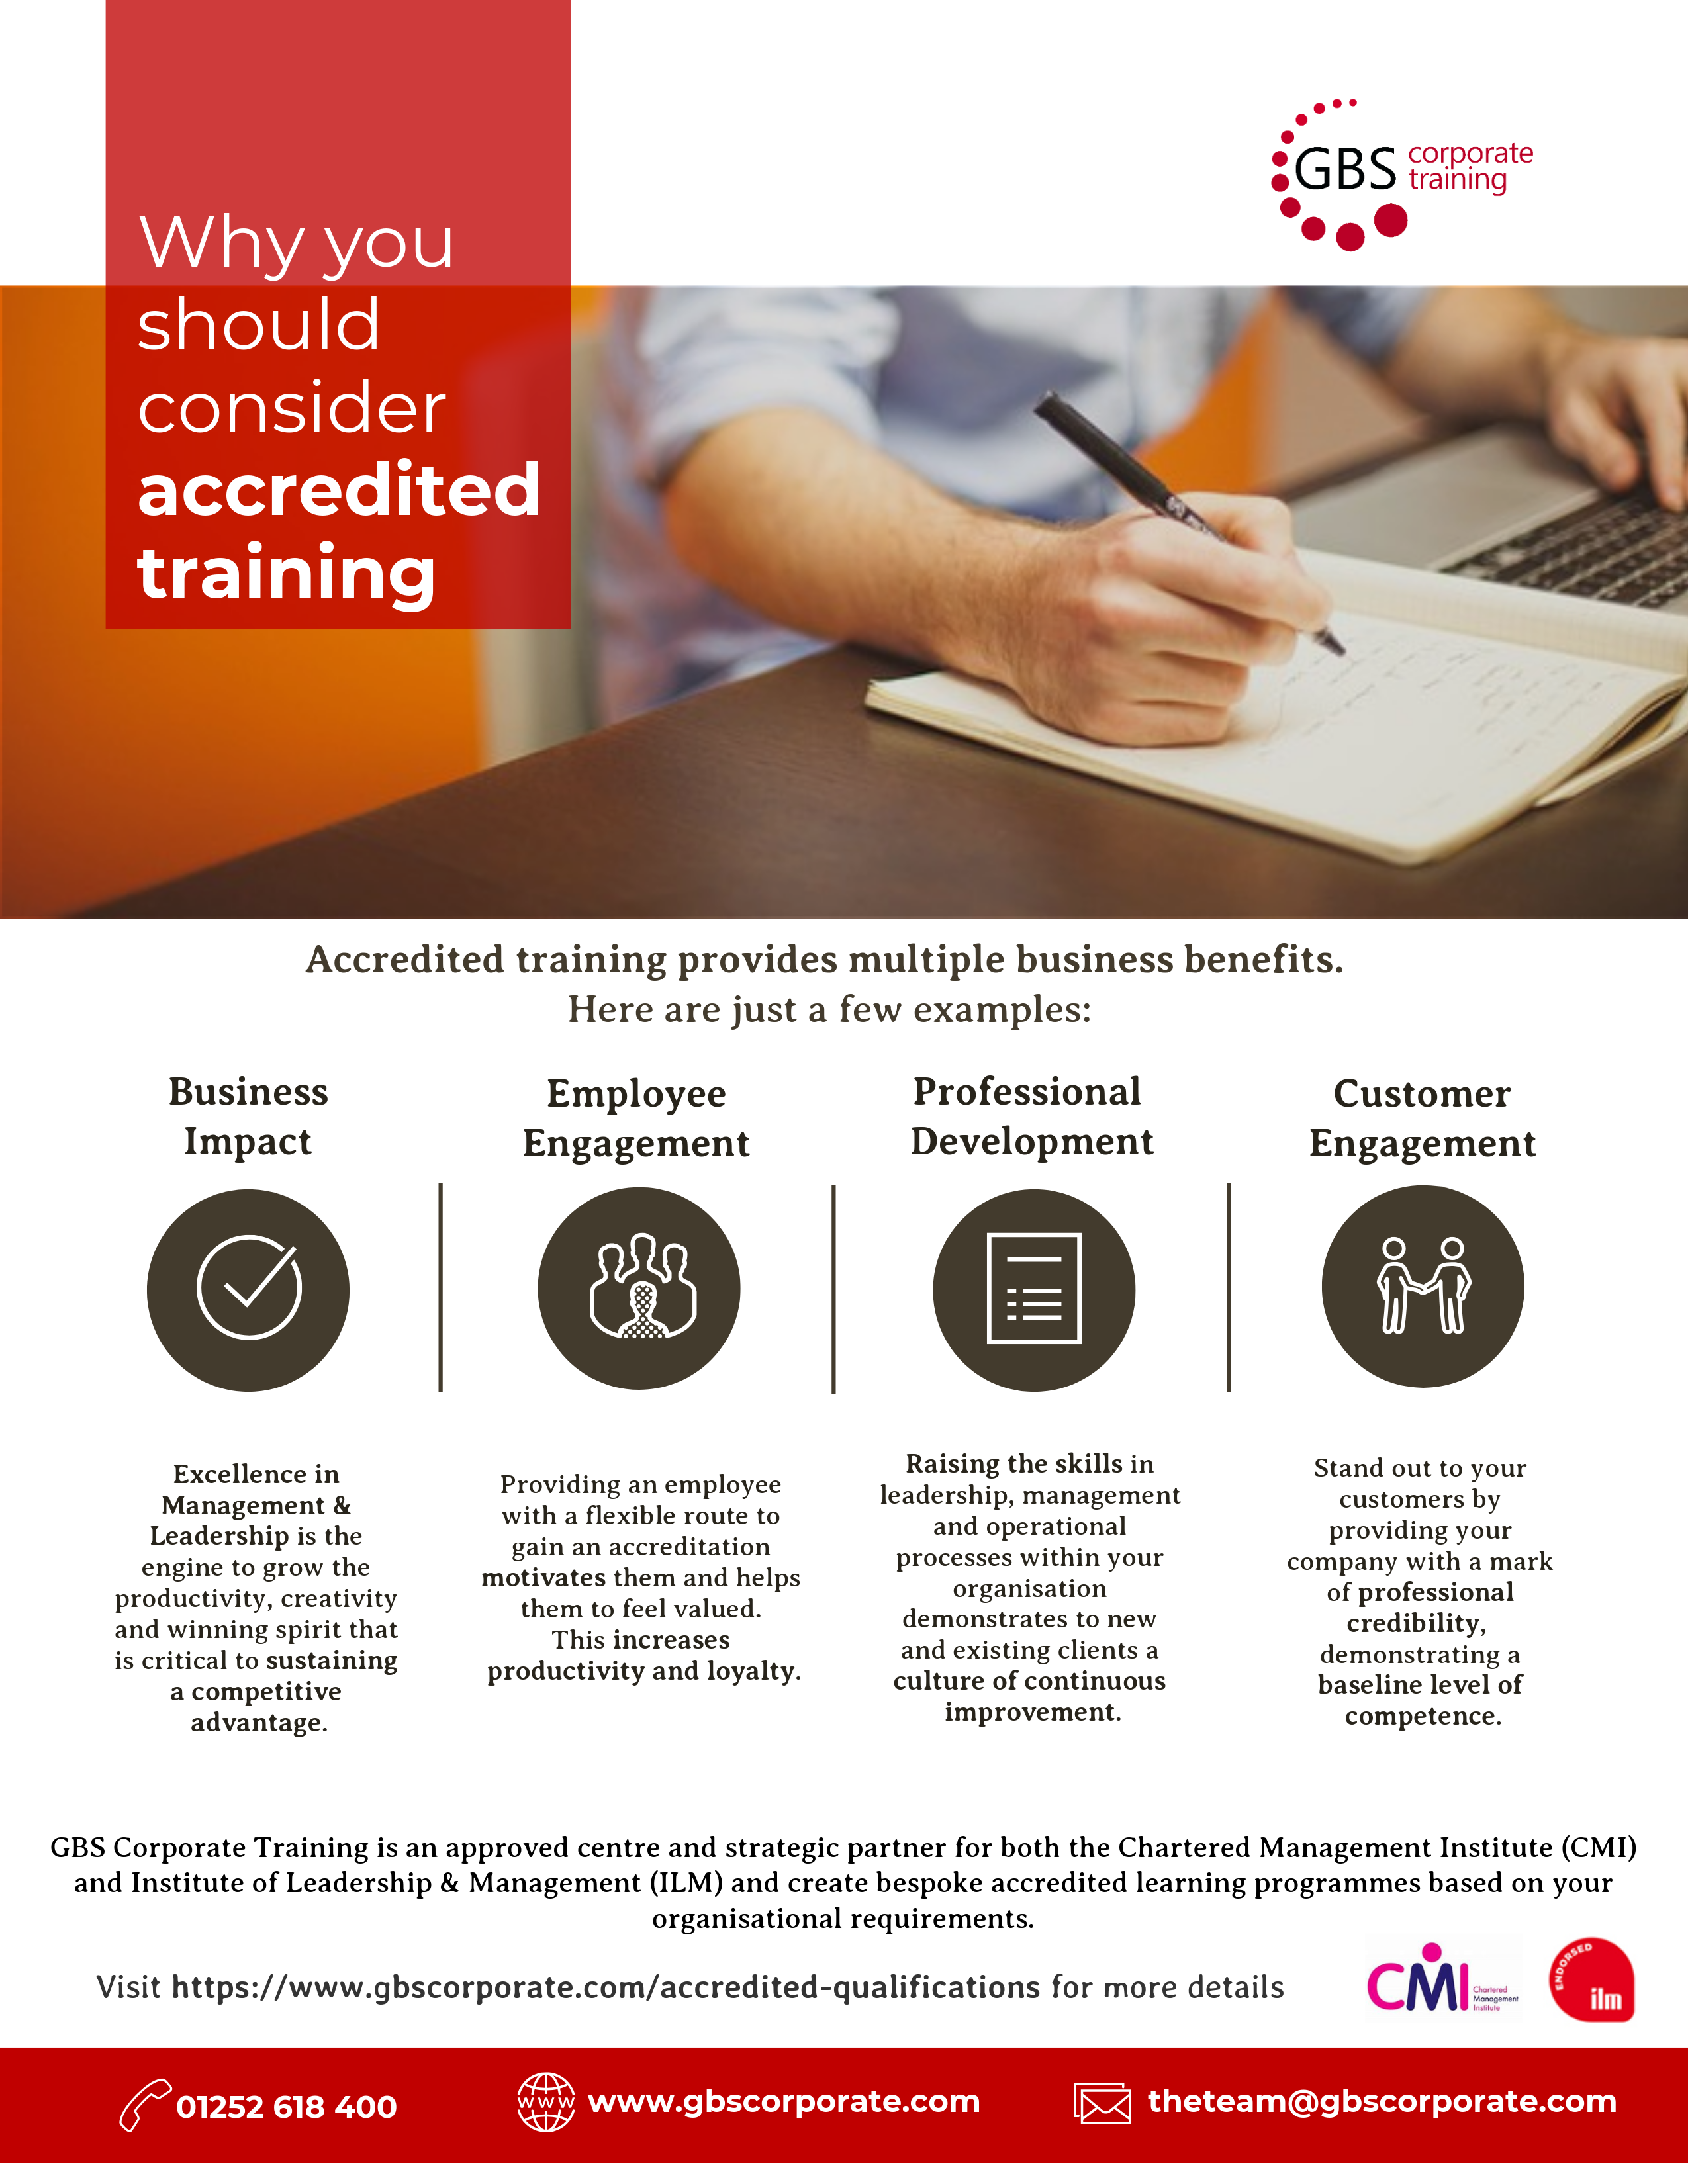 Why You Should Consider Accredited Training